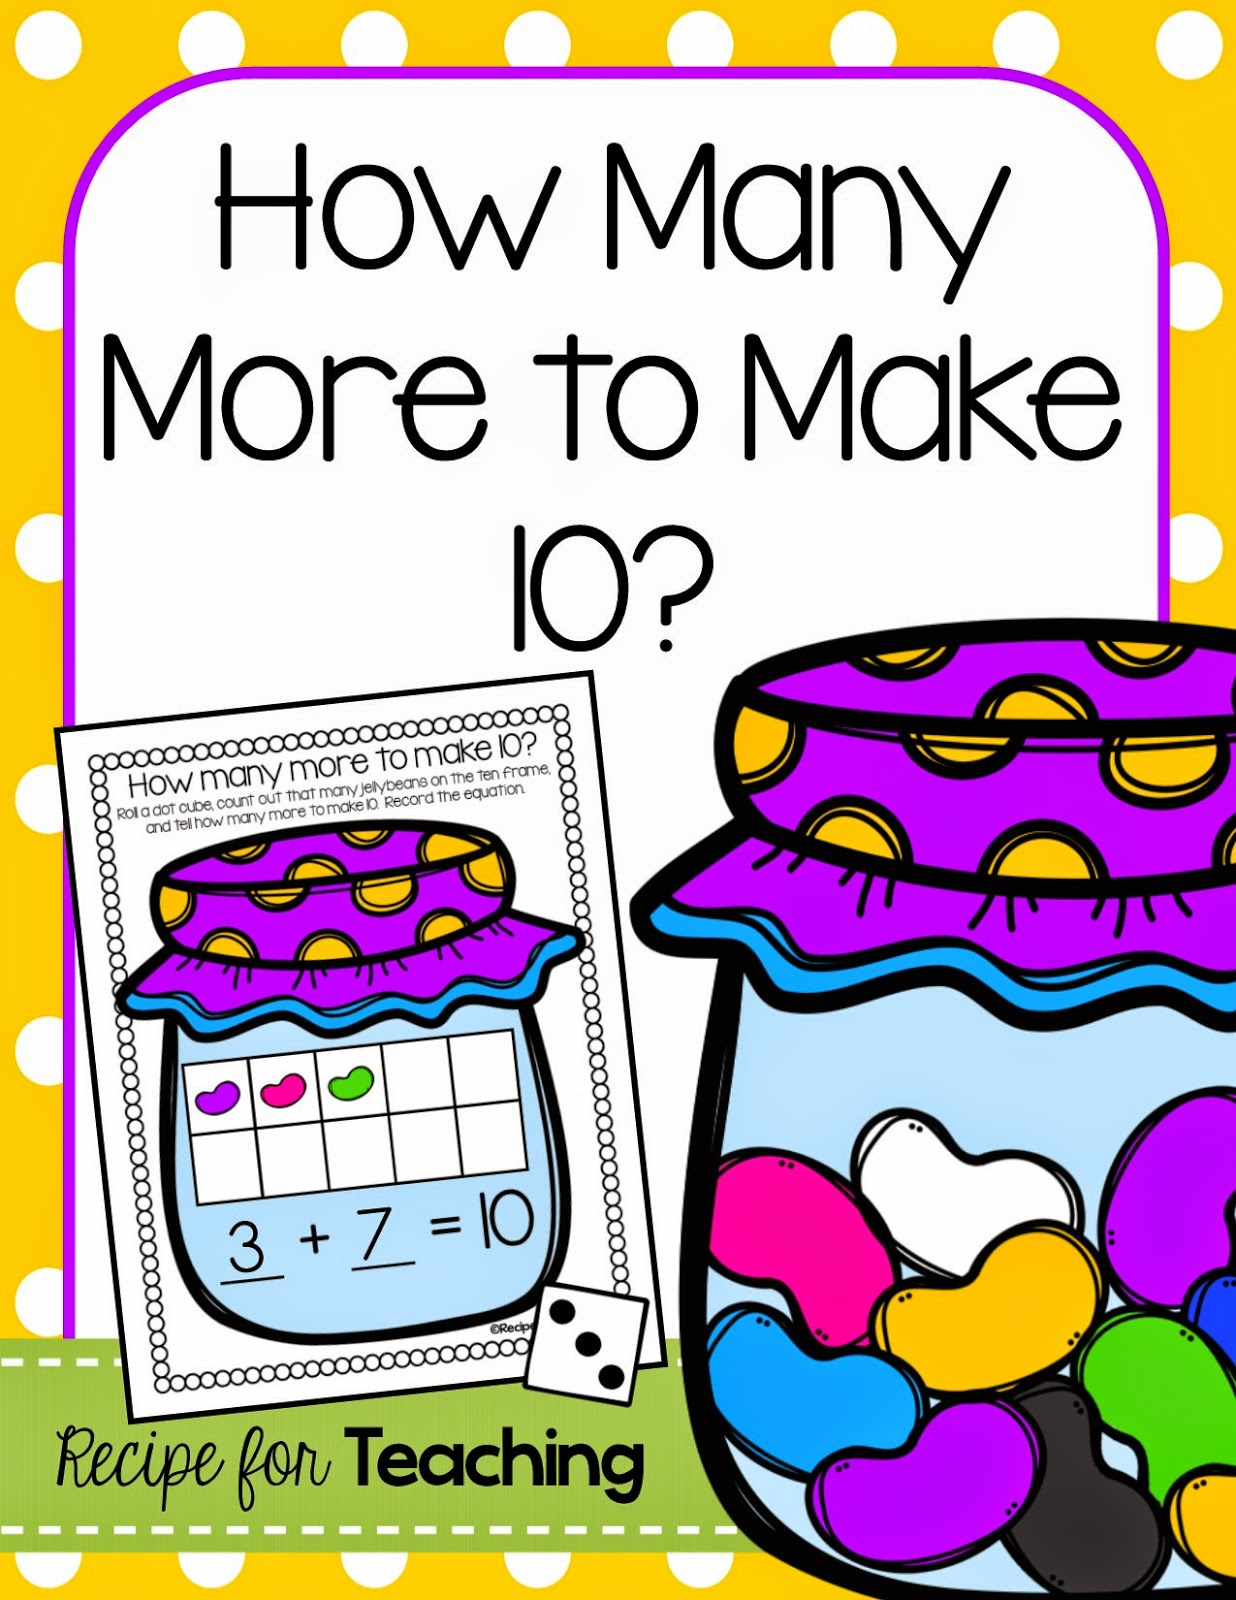 https://www.teacherspayteachers.com/Product/Jellybean-Math-1787387